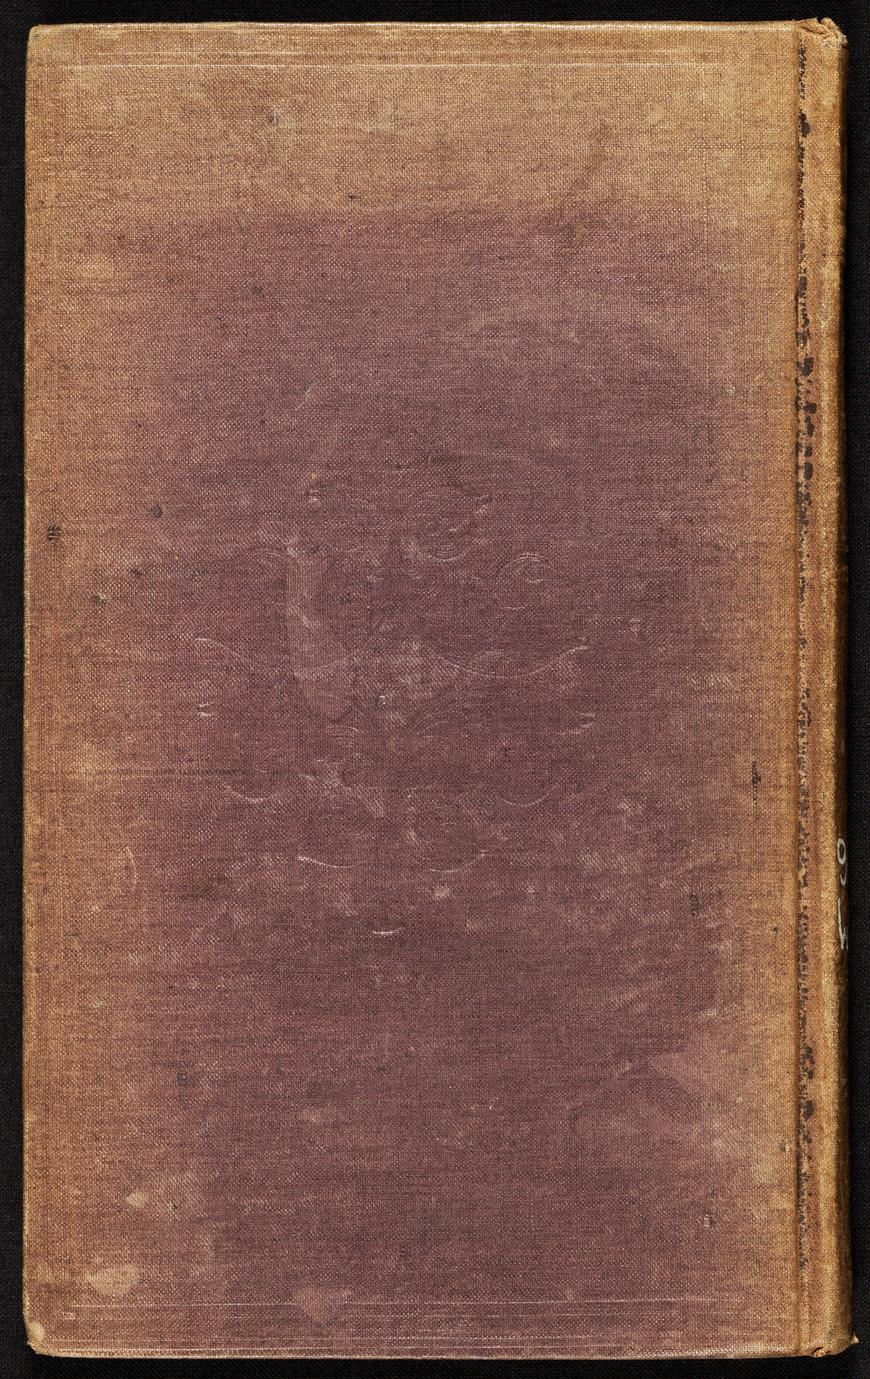 A winter in the West Indies and Florida : containing general observations upon modes of travelling, manners and customs, climates and productions : with a particular description of St. Croix, Trinidad de Cuba, Havana, Key West, and St. Augustine as places of resort for northern invalids (1 of 4)